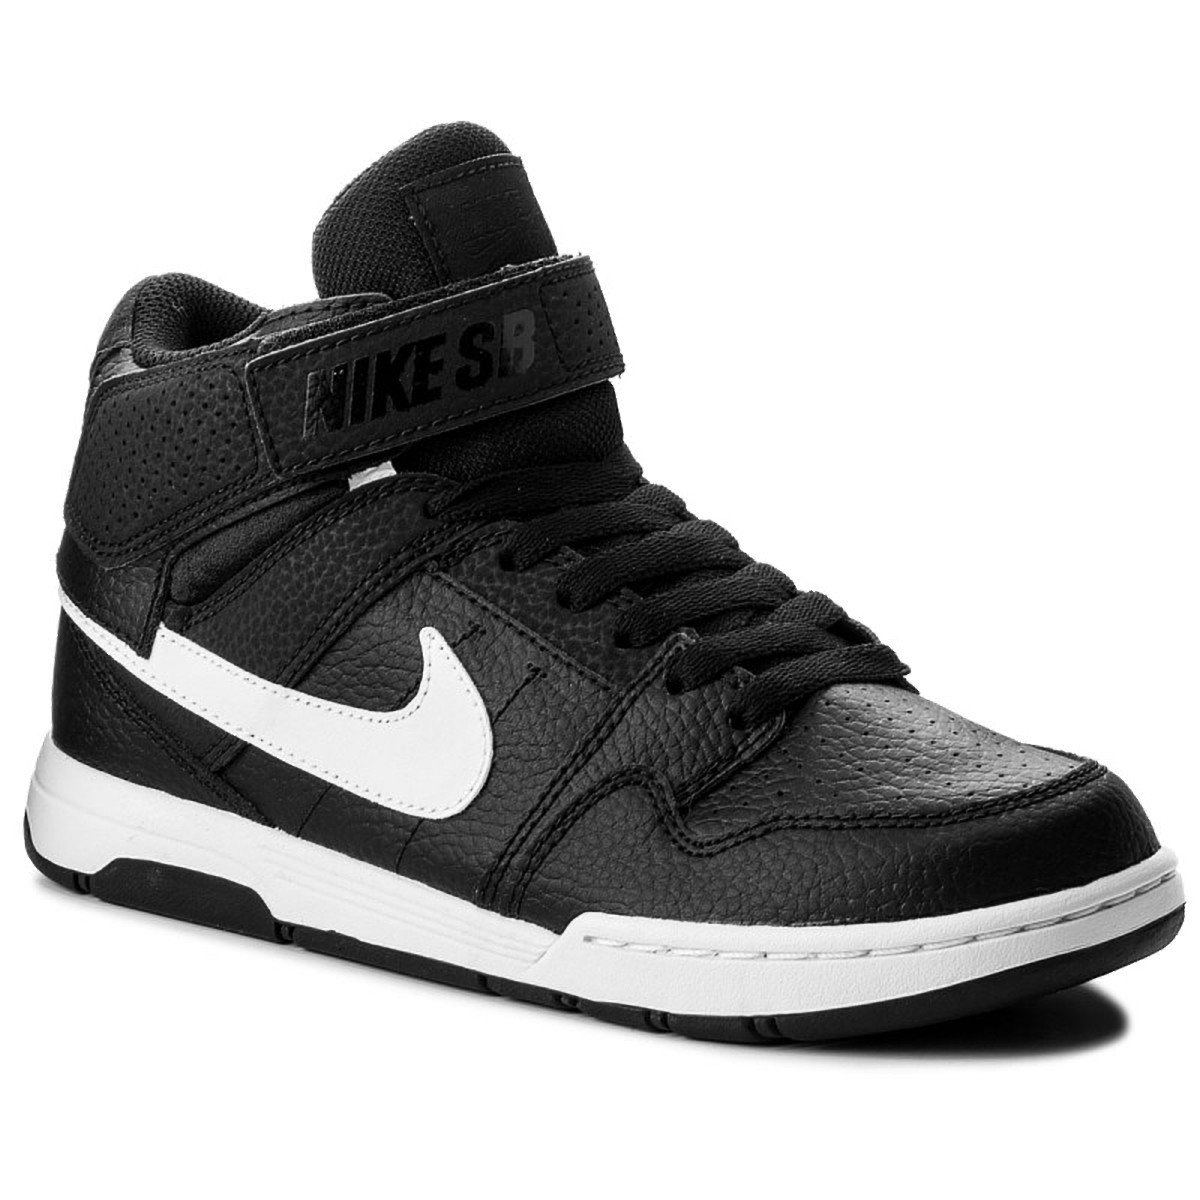 Nike SB Mogan Mid 2 JR (GS) Boys' Grade School Skate Shoes 645025-015 (12C)